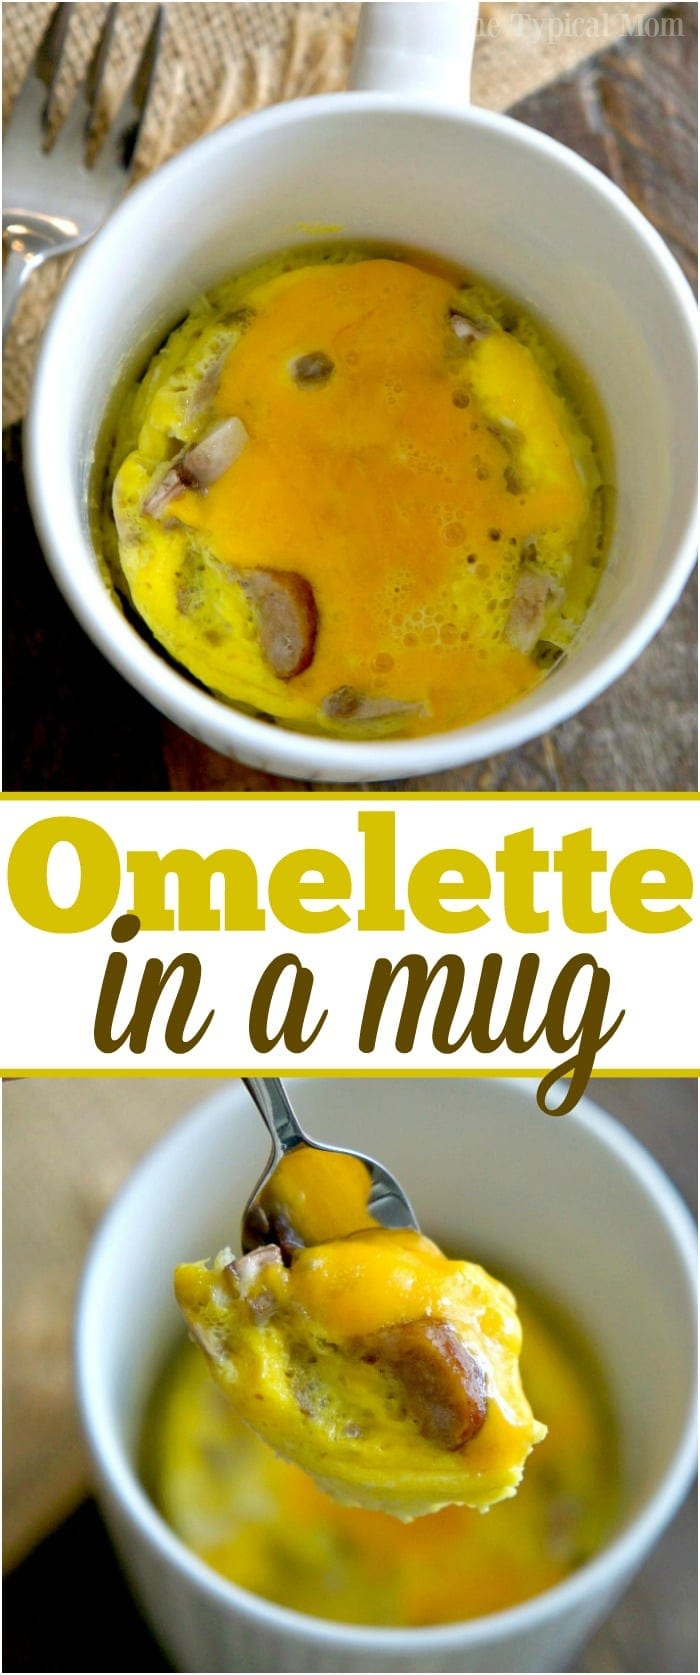 You've got to try this 1 1/2 minute omelette in a mug recipe, it's amazing!! Perfect breakfast in a mug recipe full of protein, my kids love it too!